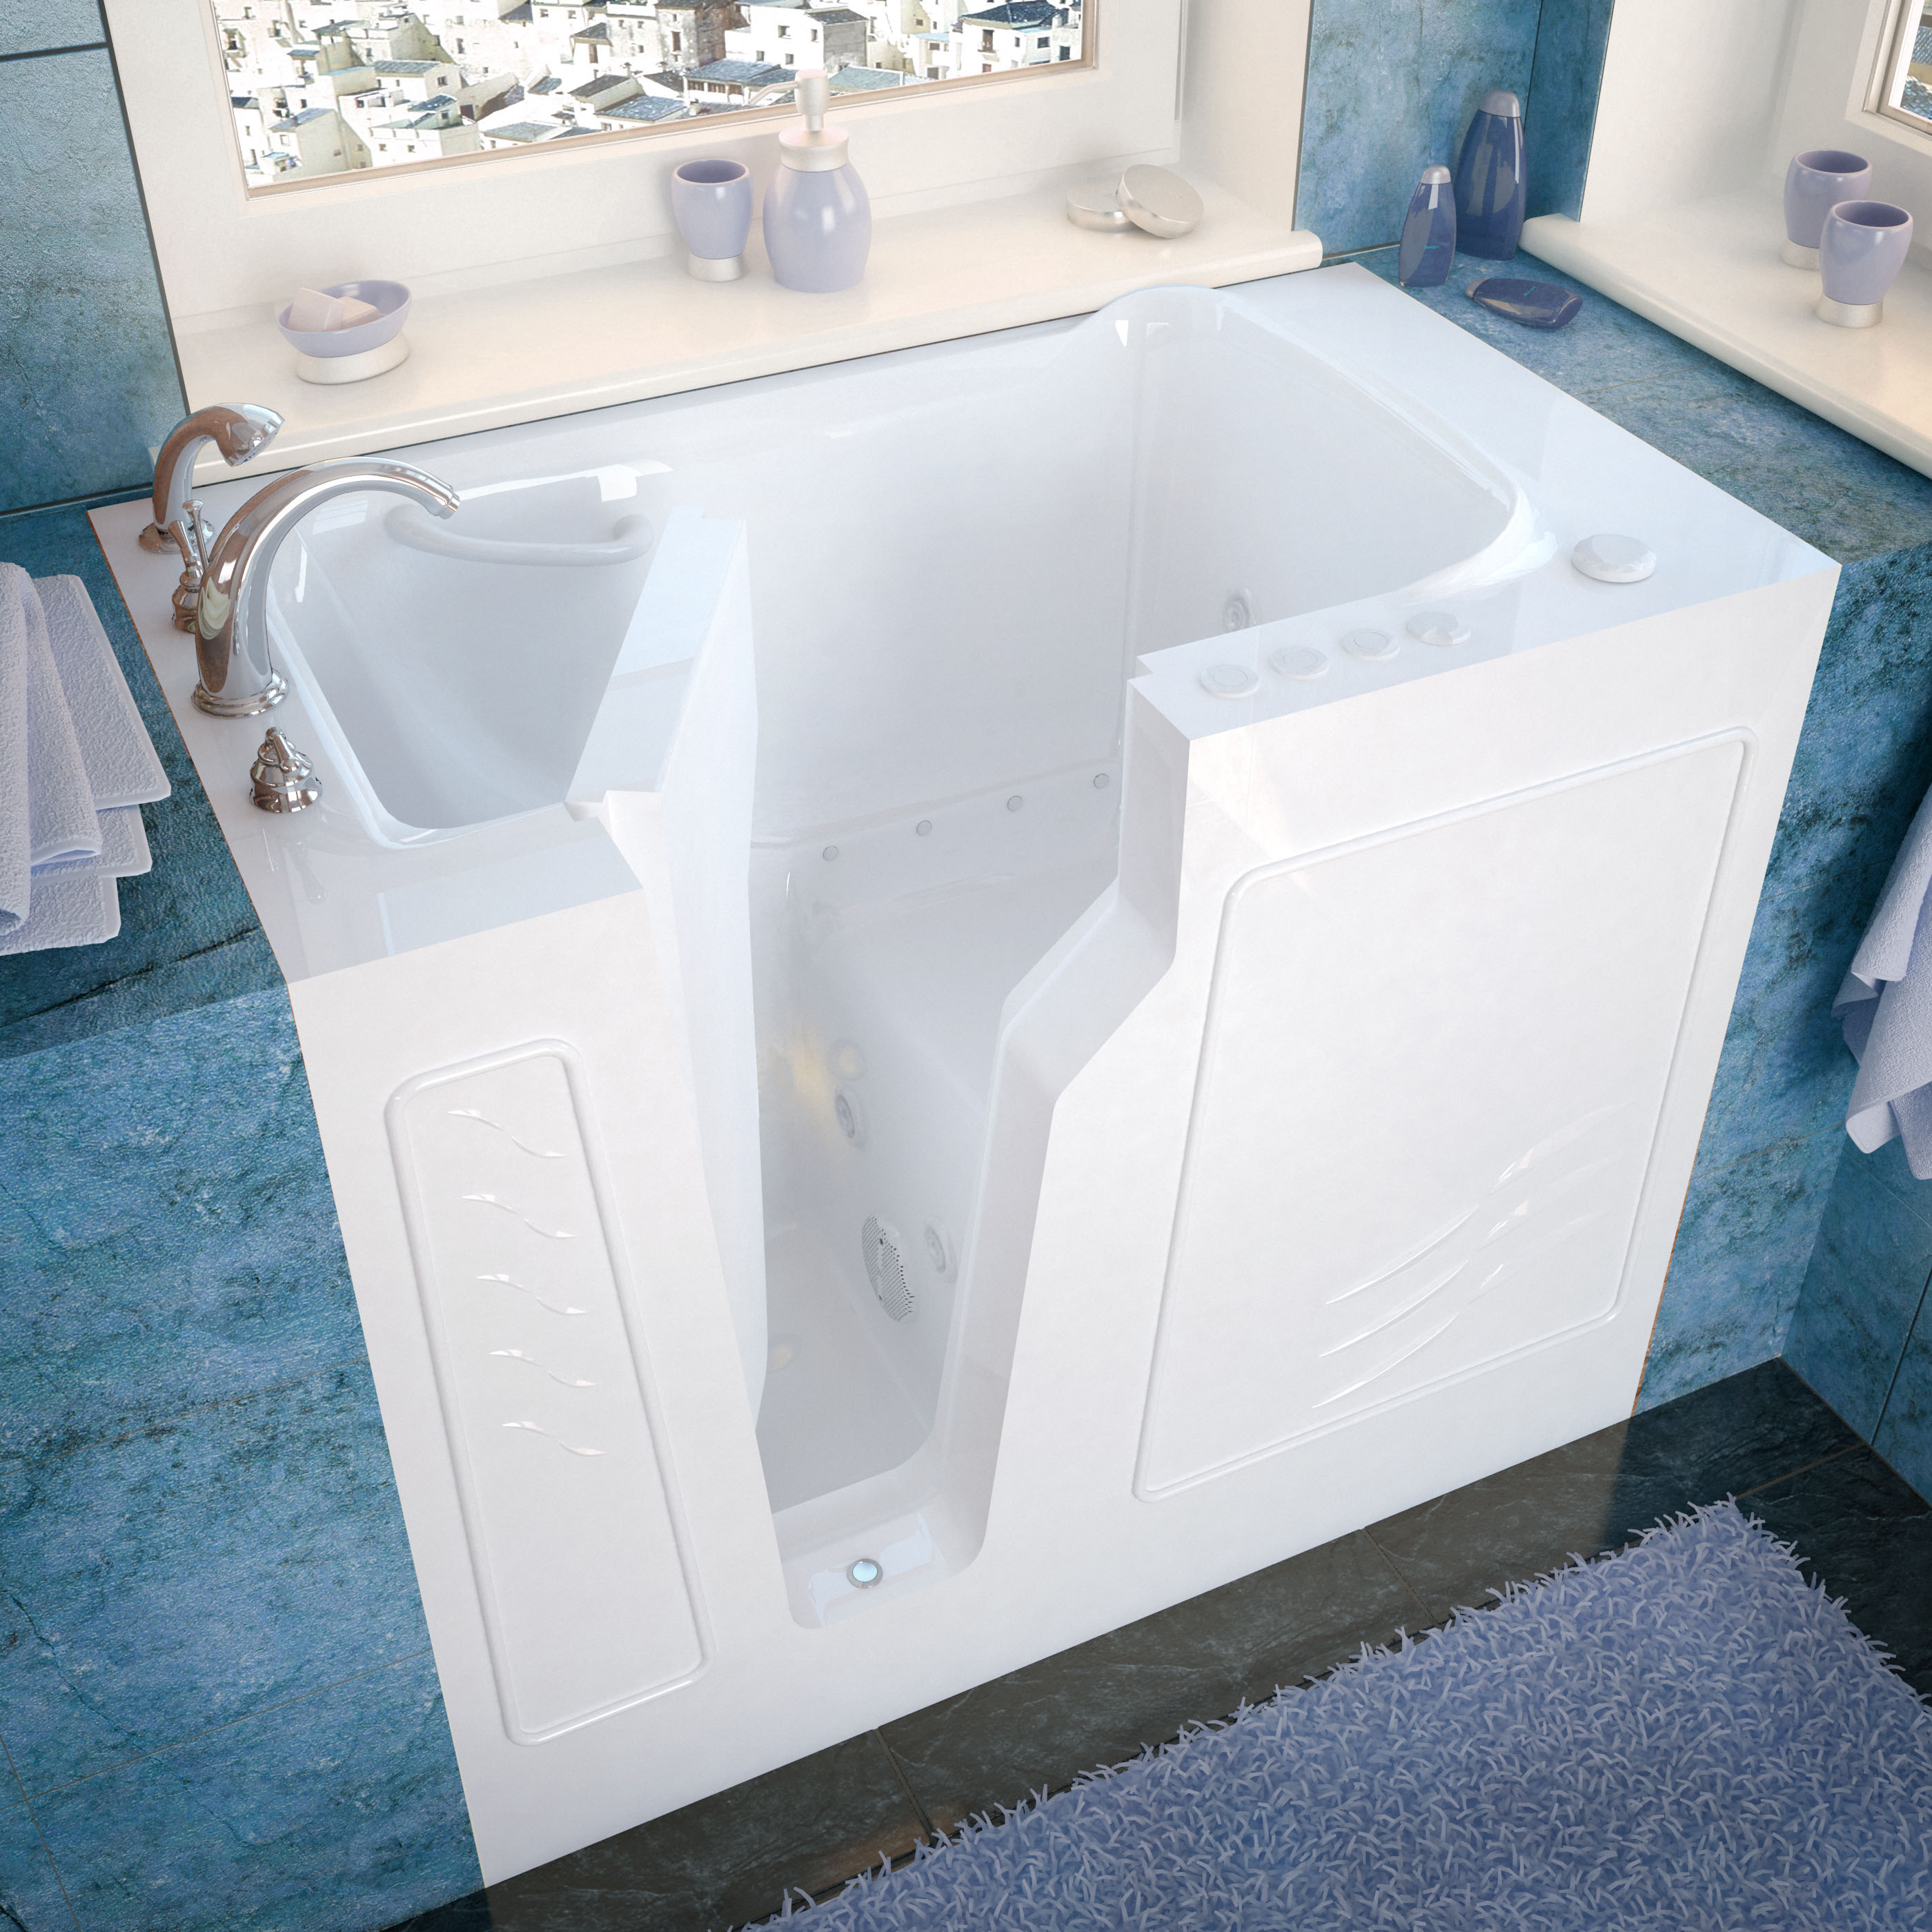 26x46 Left Drain White Whirlpool & Air Jetted Walk-In Bathtub